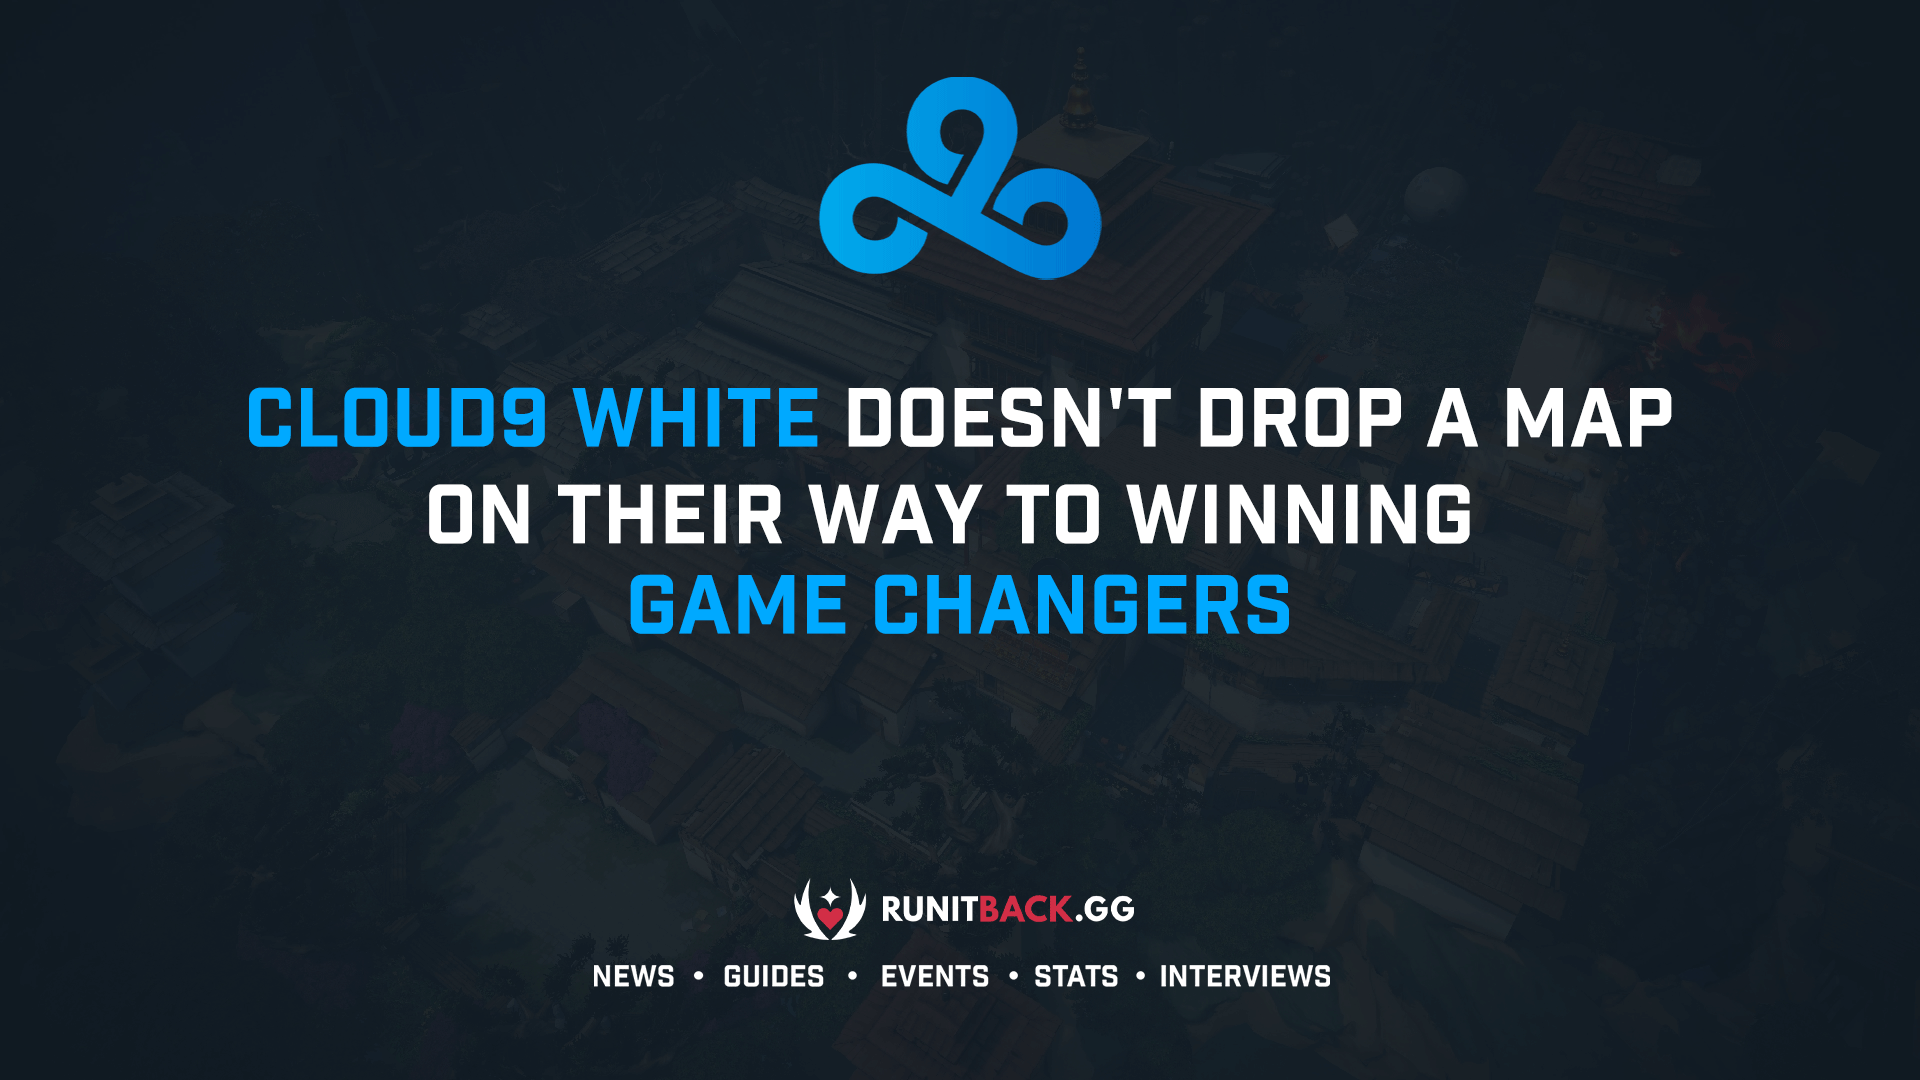 Cloud9 White doesn't drop a map on their way to winning Game Changers